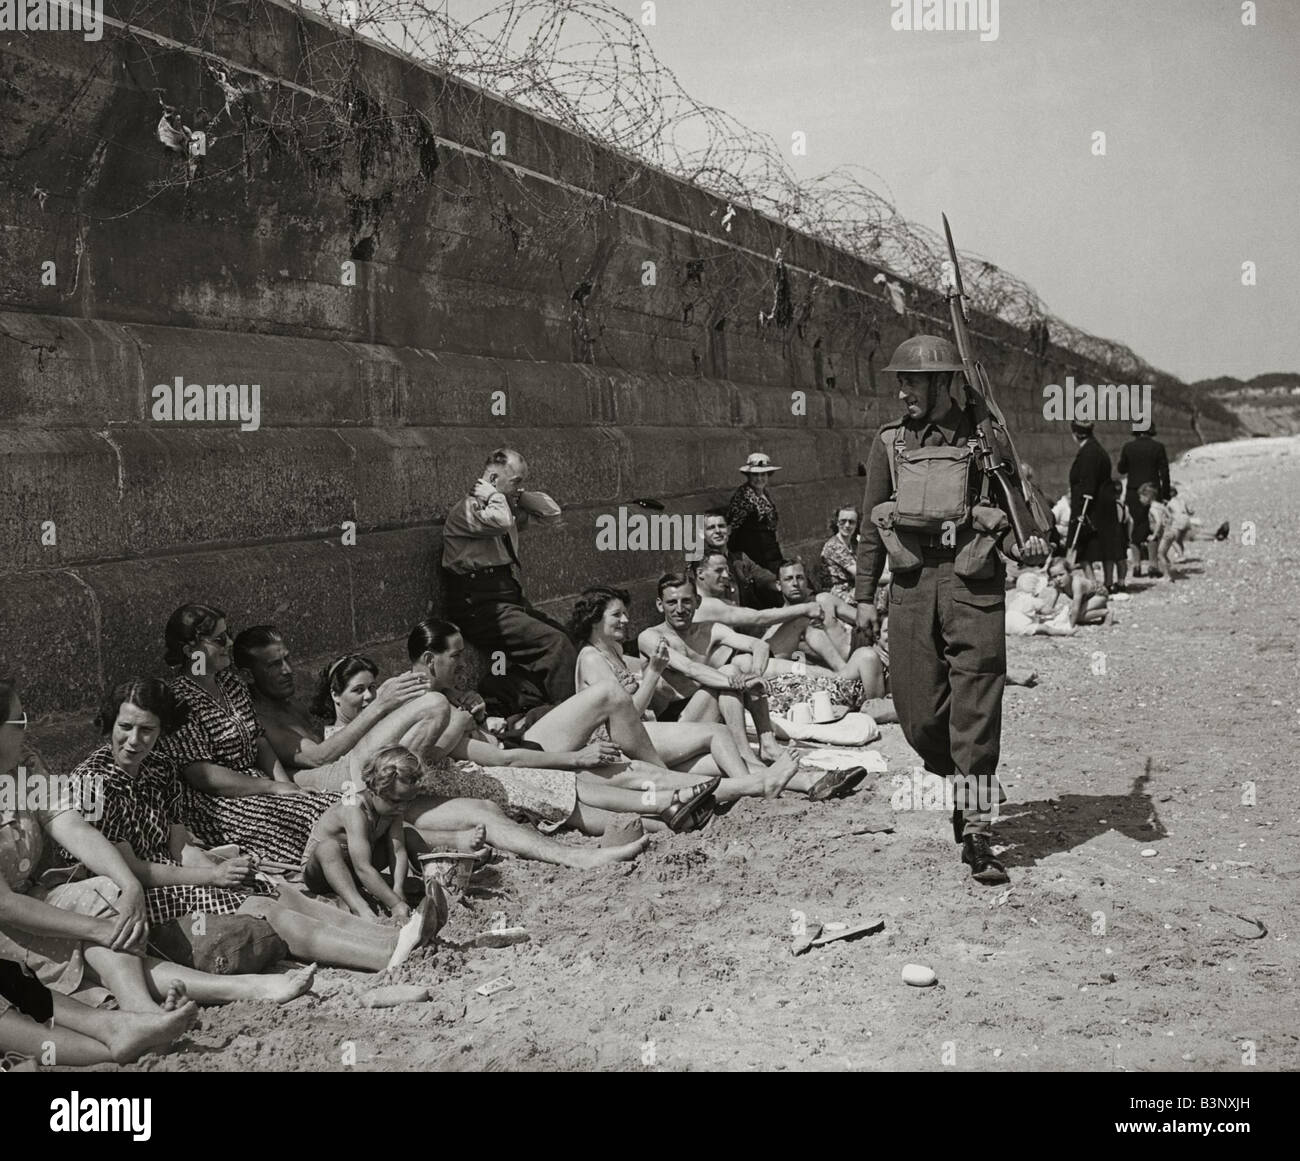 Holidaymakers sunbathing look pityingly at a passing home front serviceman carrying a rifle and bayonet wearing - Stock Image